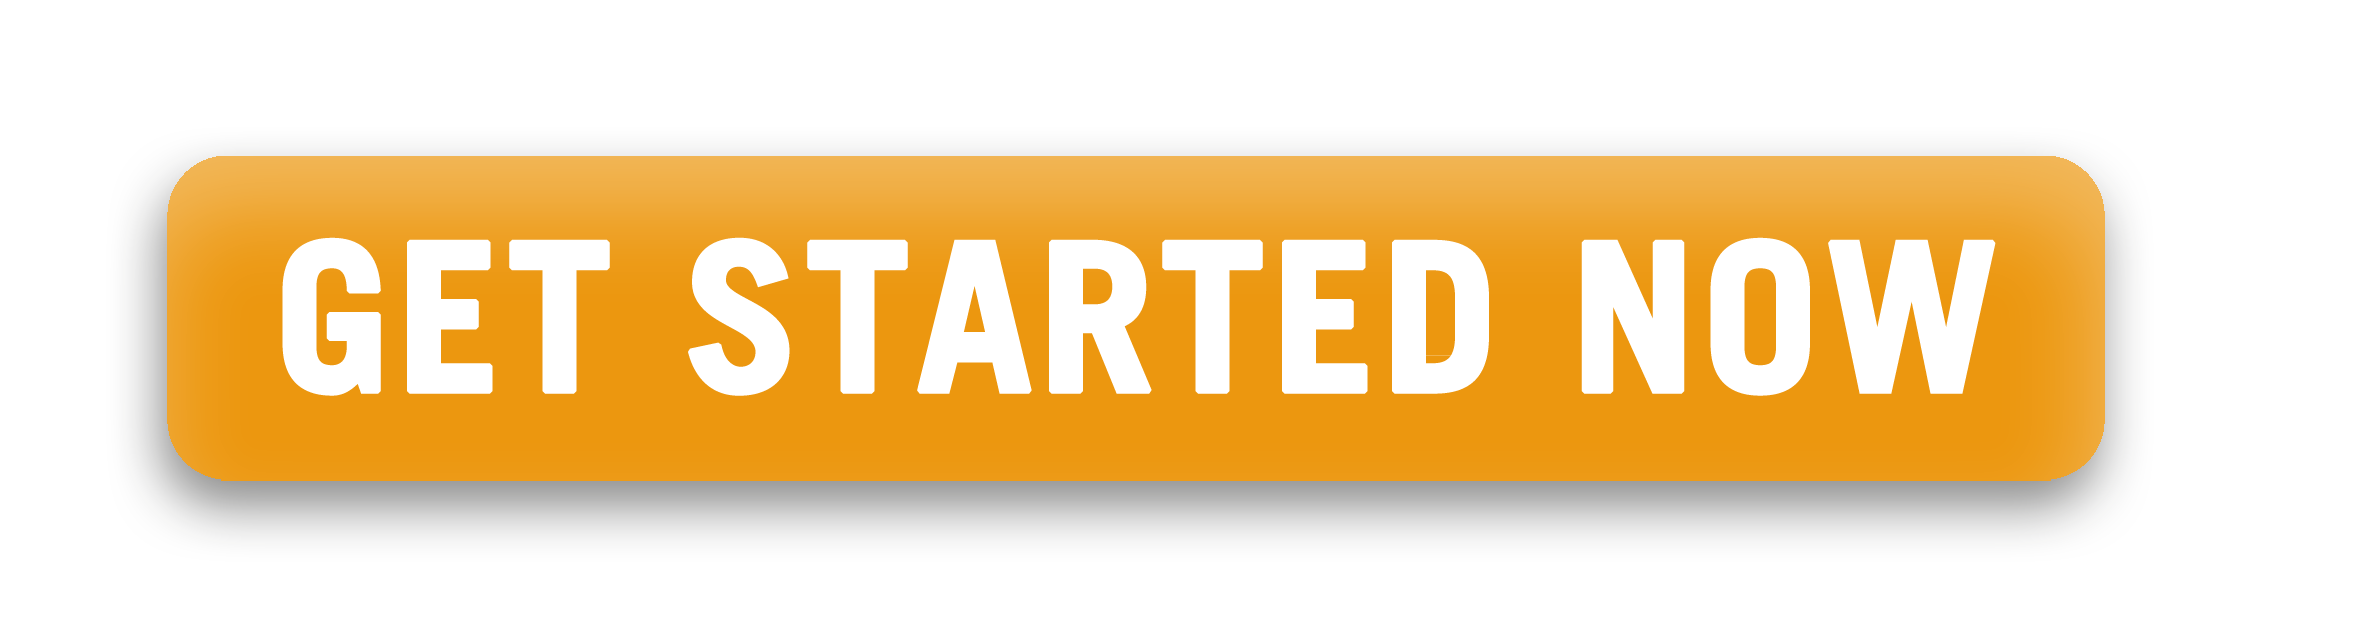 Get Started Now Button Clipart button png 5 - 2362 X 625 - Get Started Now Button PNG